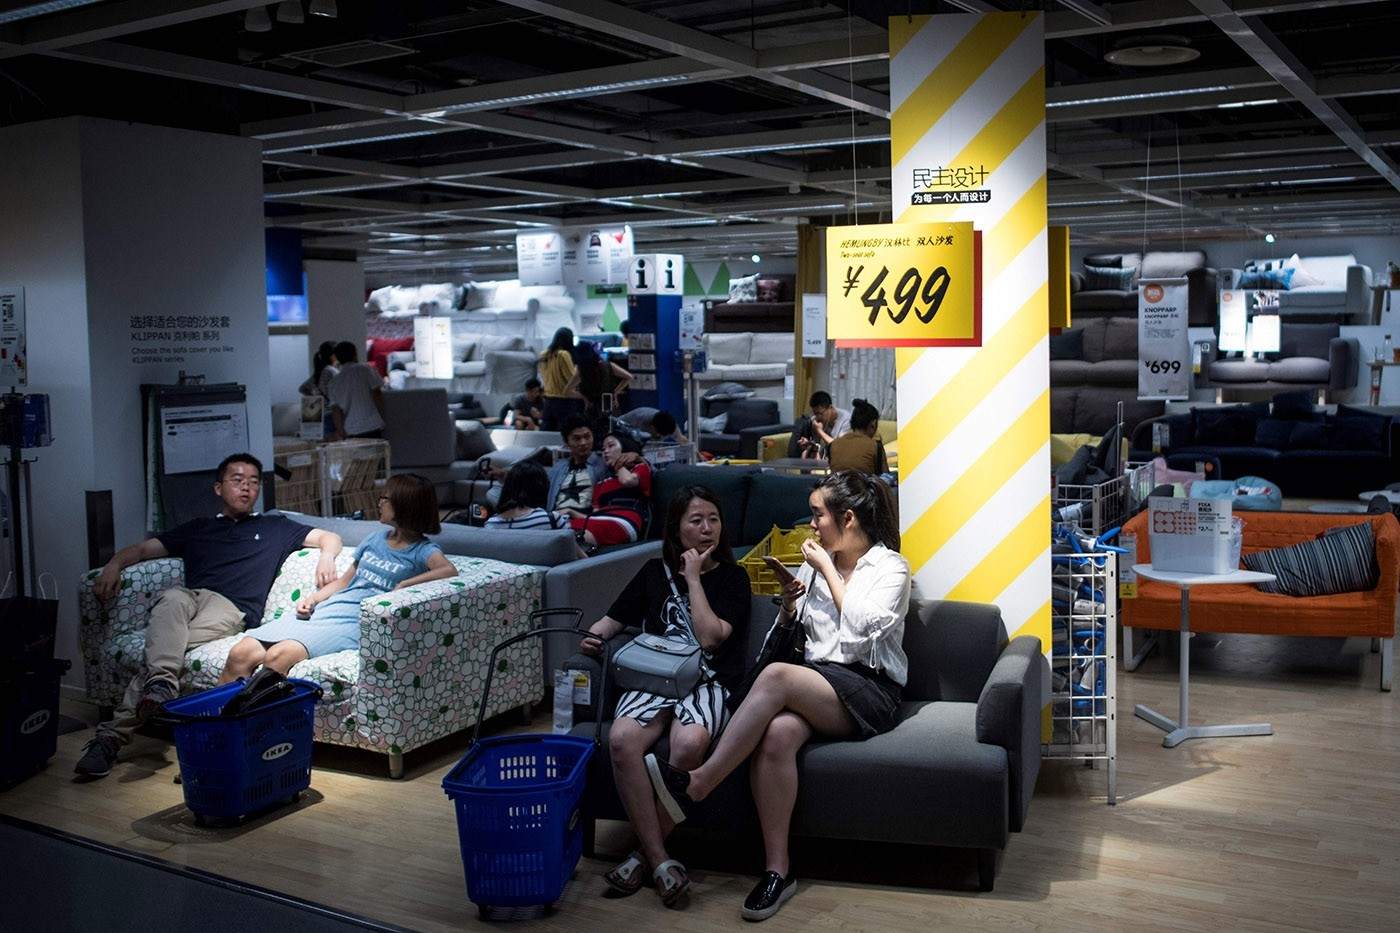 Ikea serves as new home for Chinese shoppers in summer heat